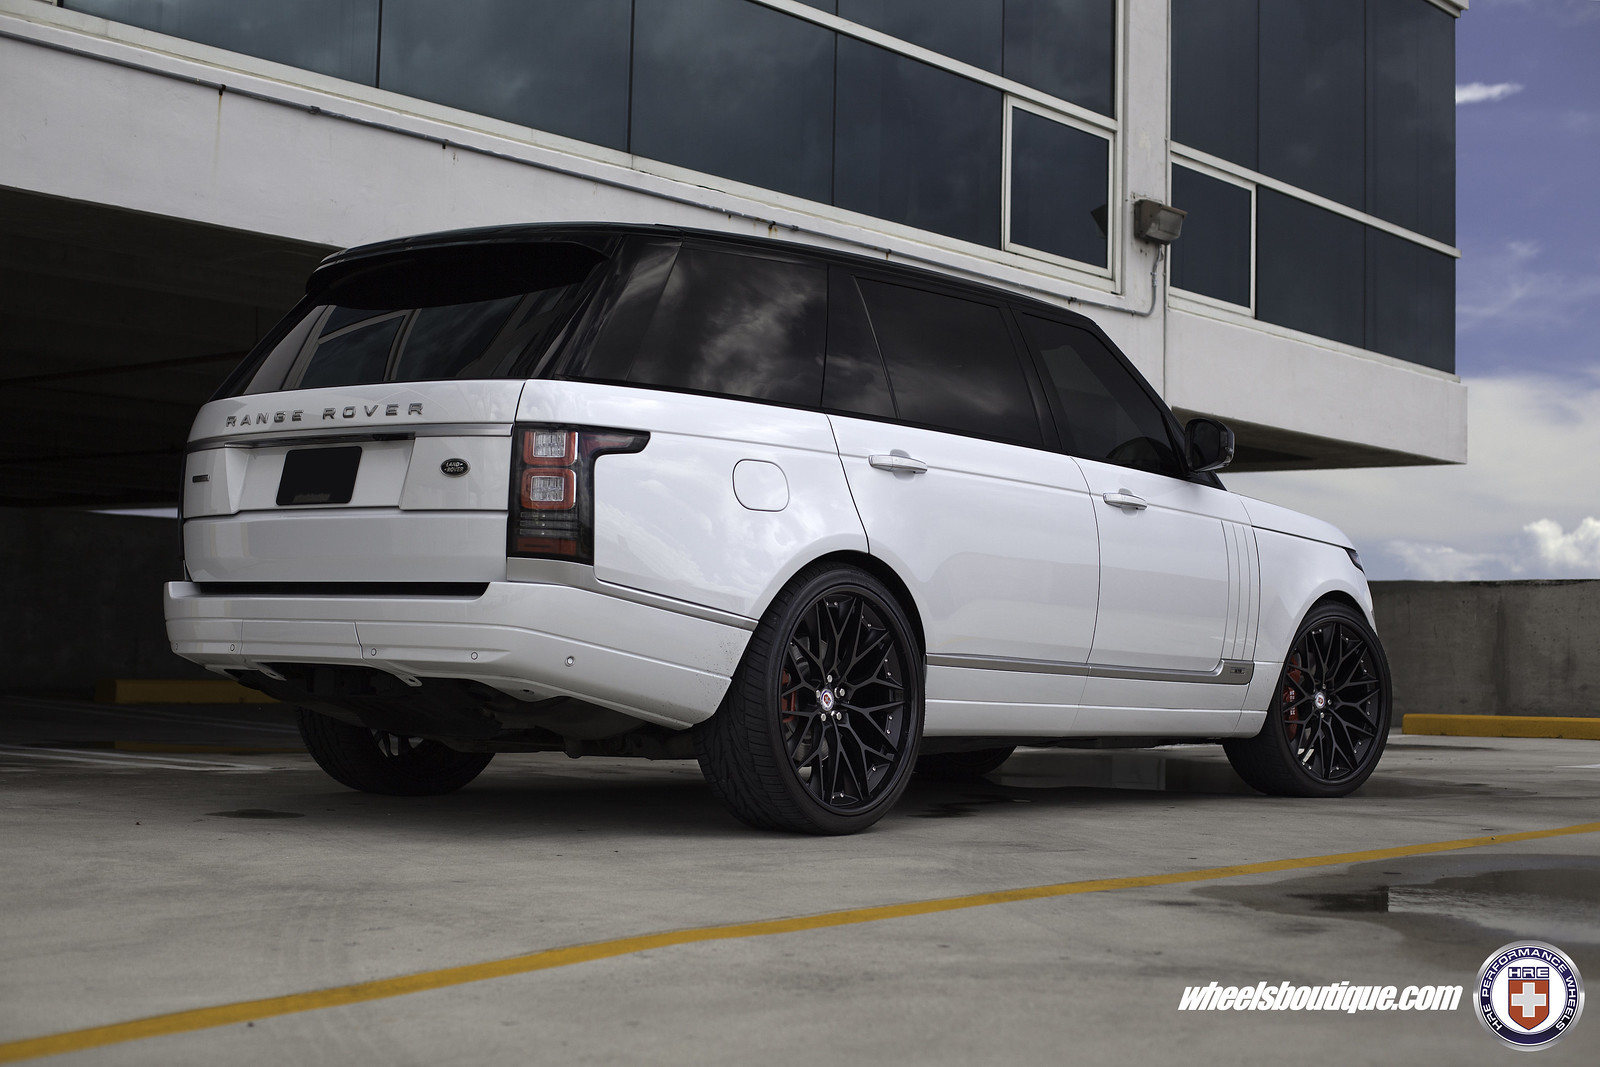 Range Rover Autobiography X Hre S200 S By Team Wb